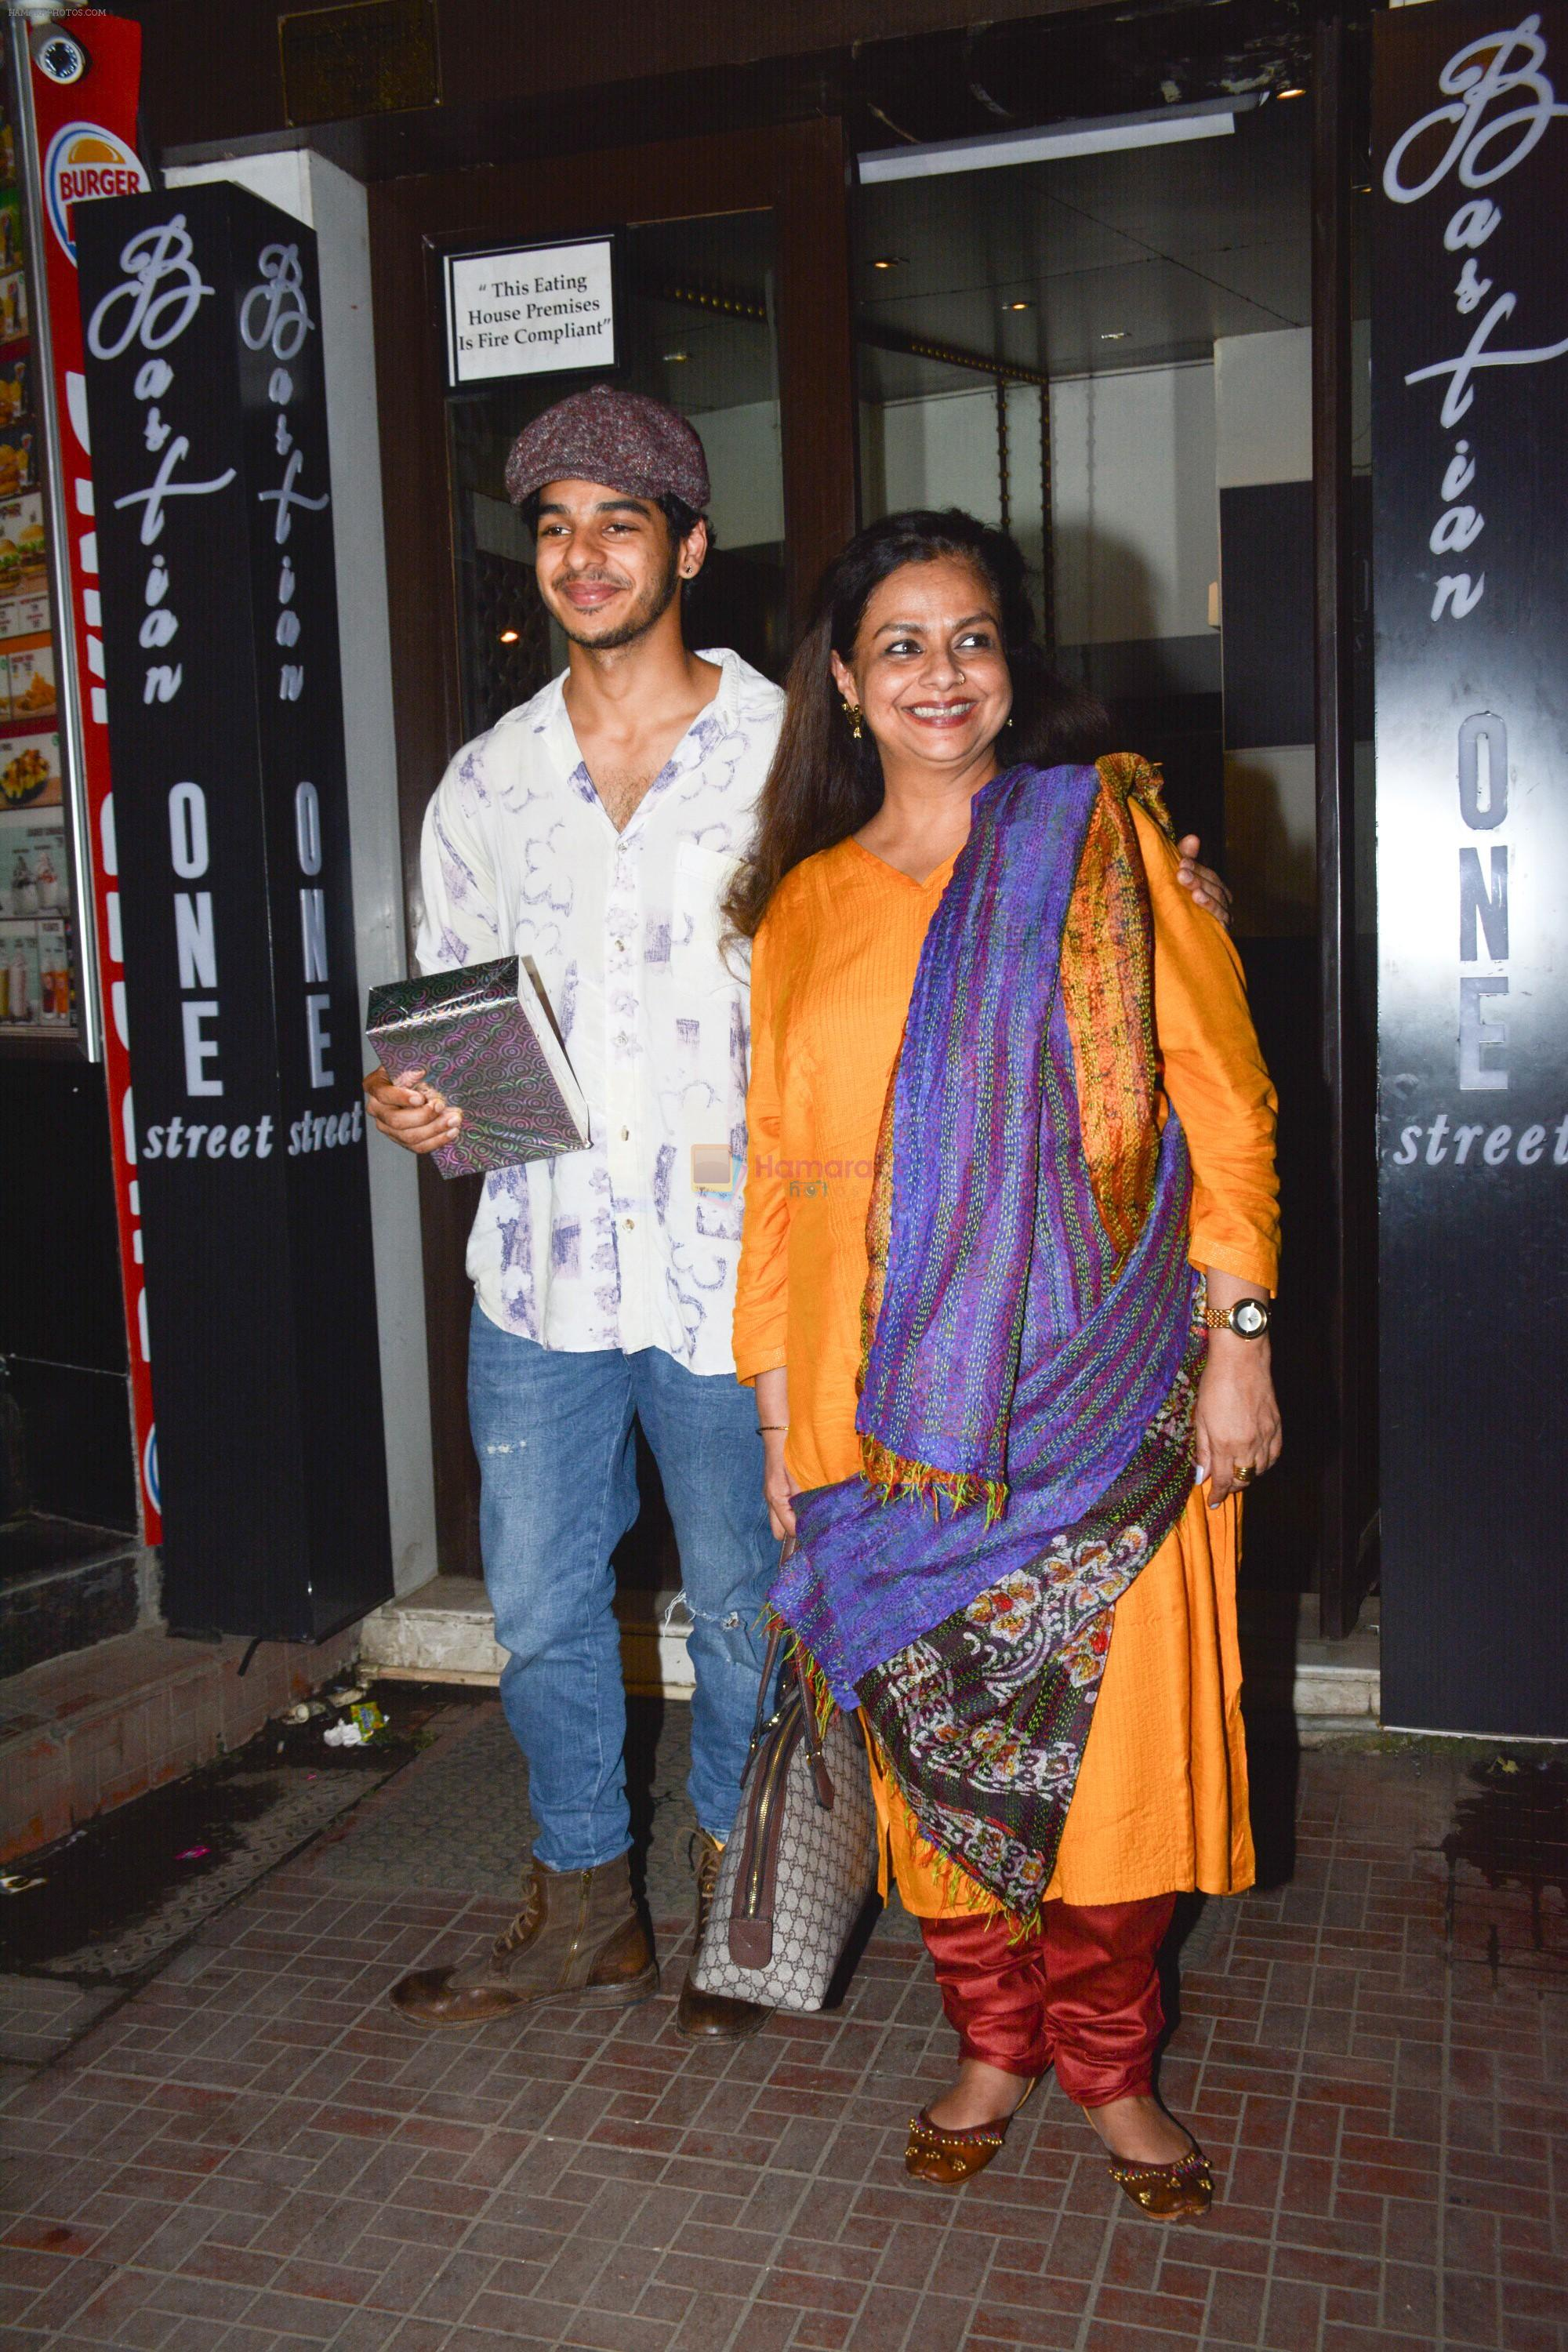 Ishaan Khattar's birthday celebration in Bastian, bandra on 31st Oct 2018